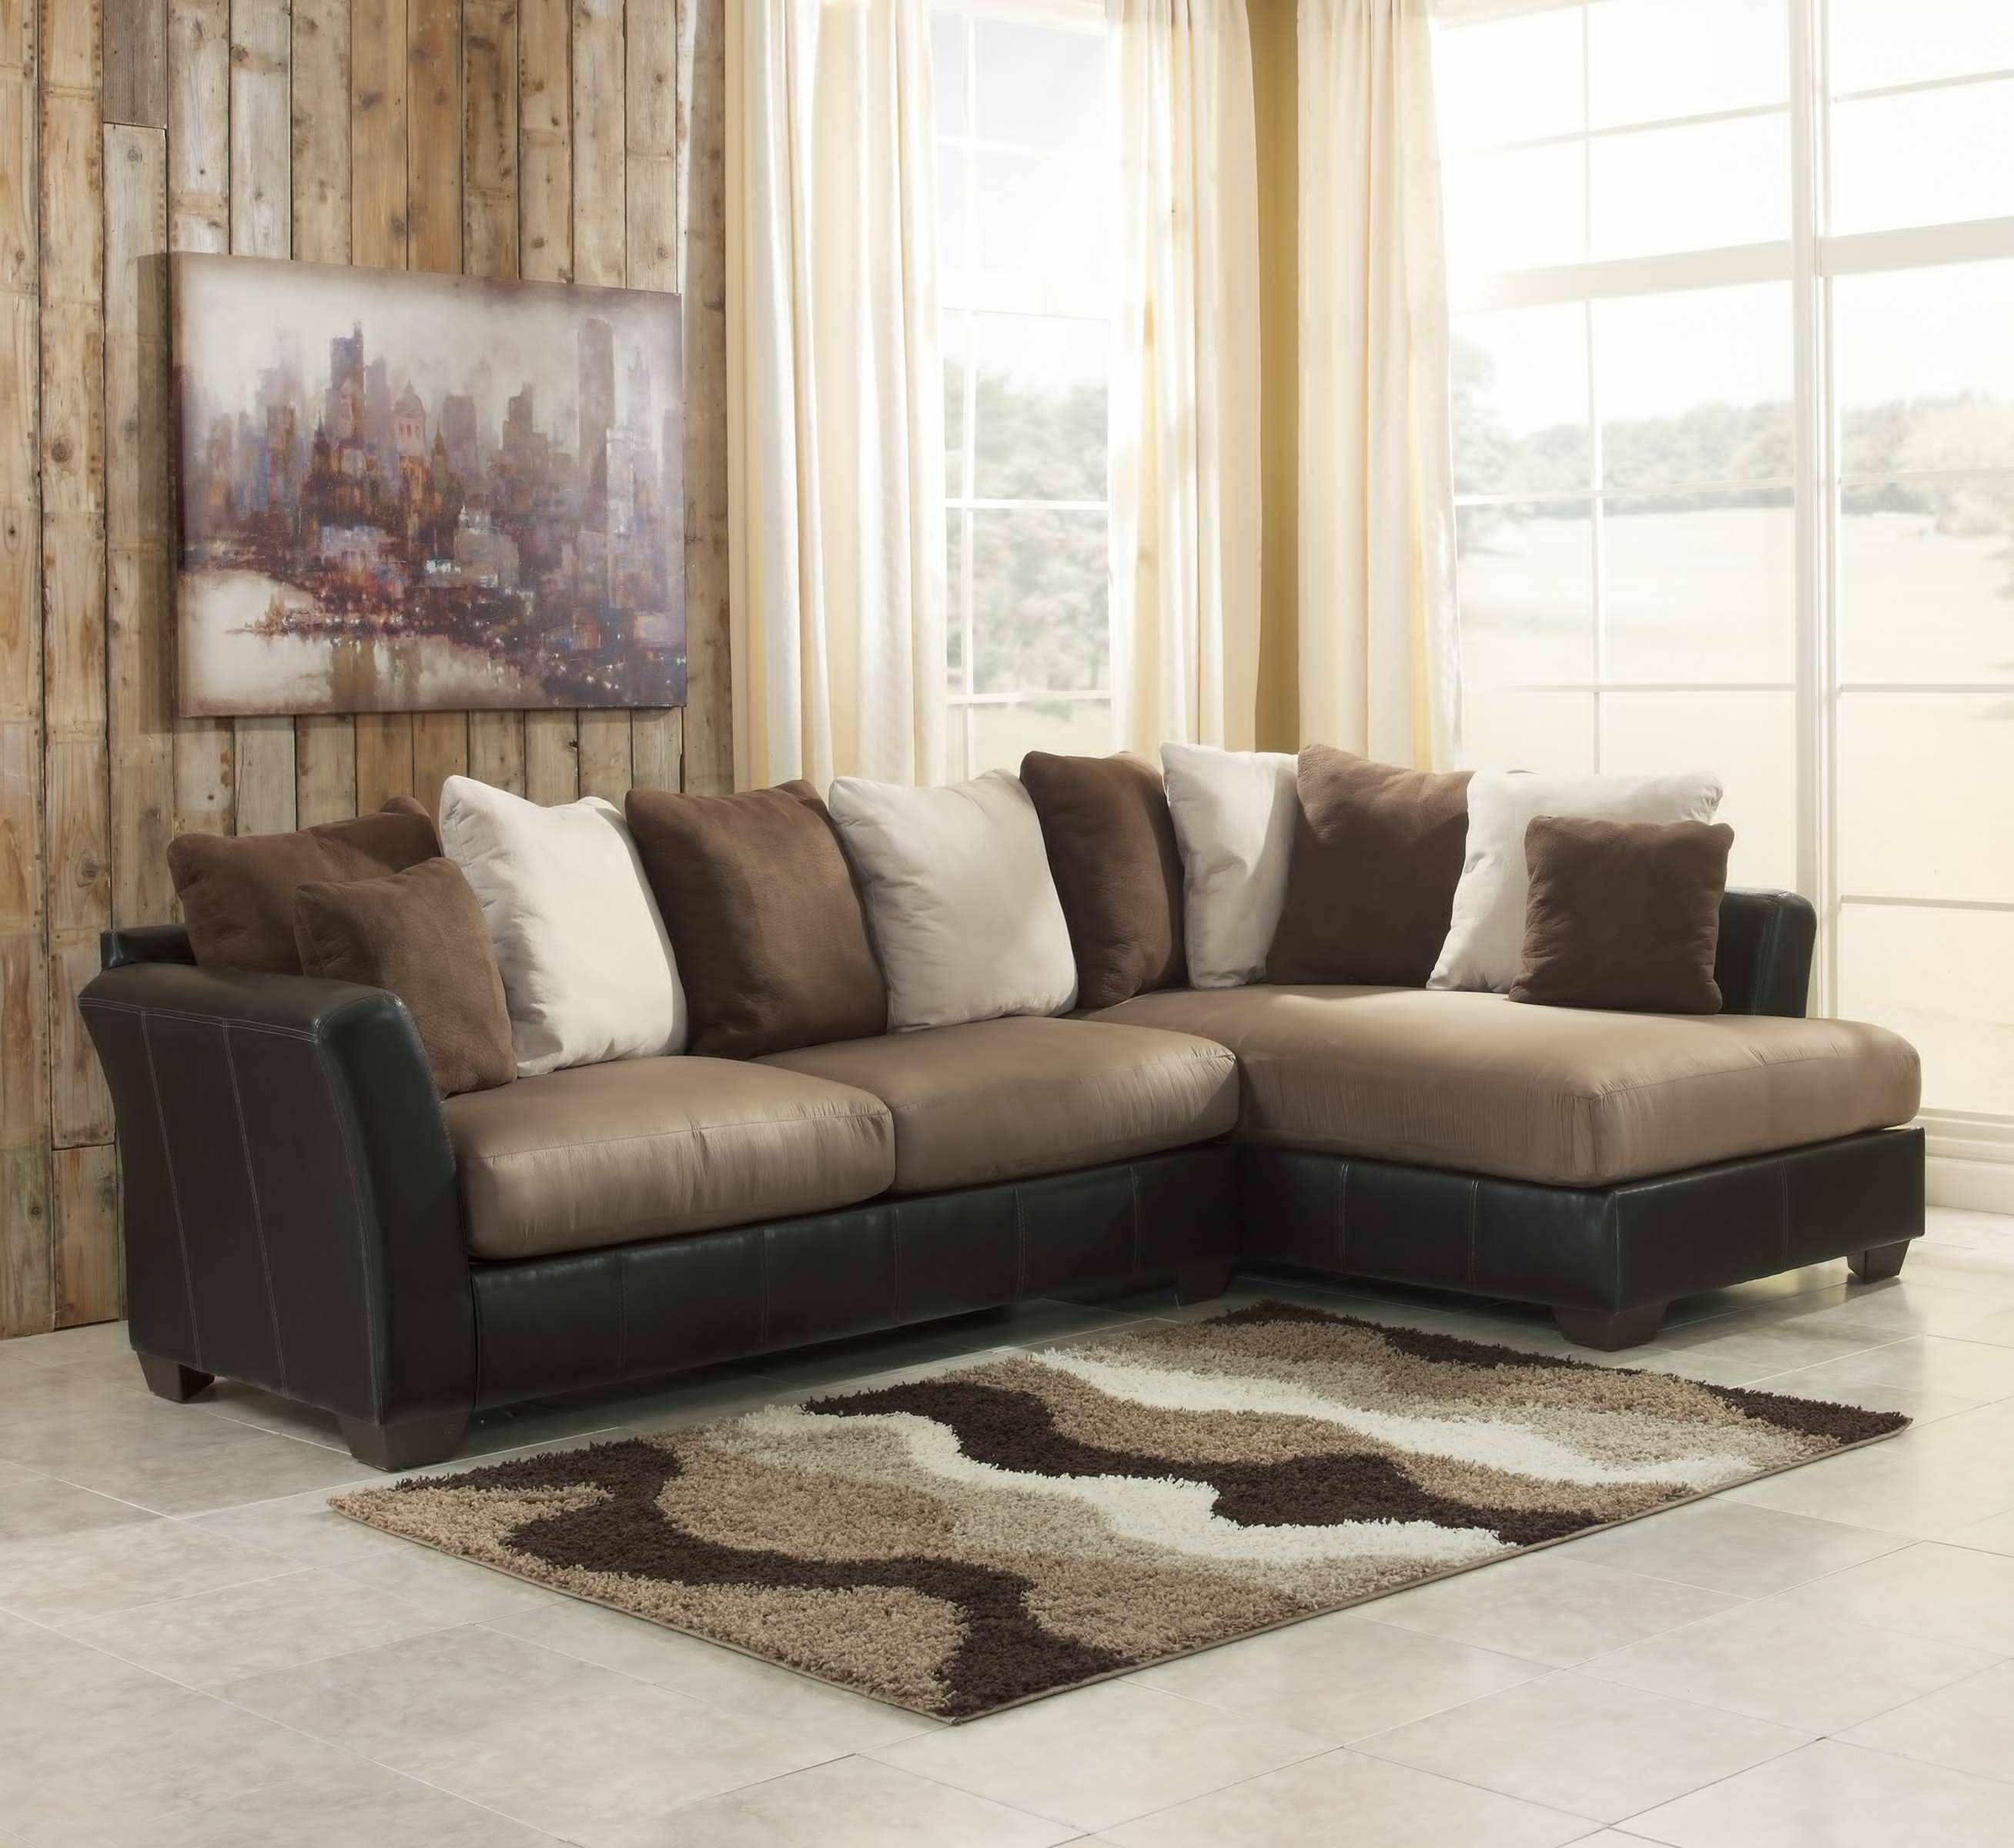 Furniture: Sectional Couch Clearance | Clearance Sectional Sofas within Closeout Sectional Sofas (Image 17 of 30)